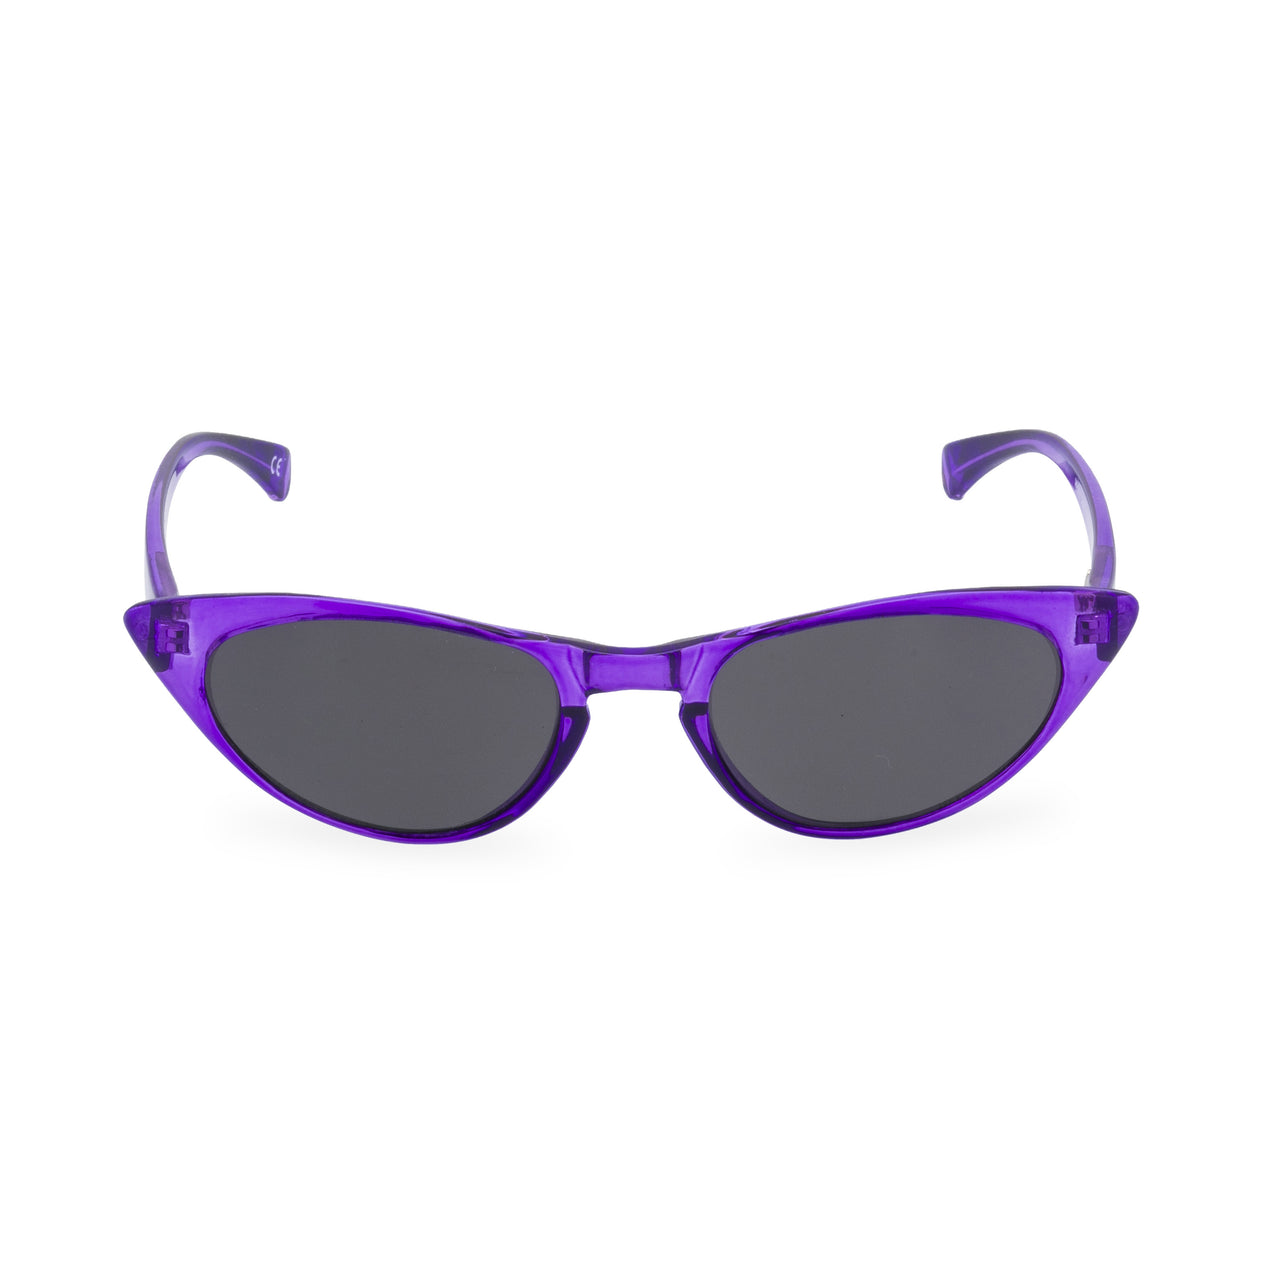 Peggy - Sunglasses Amethyst